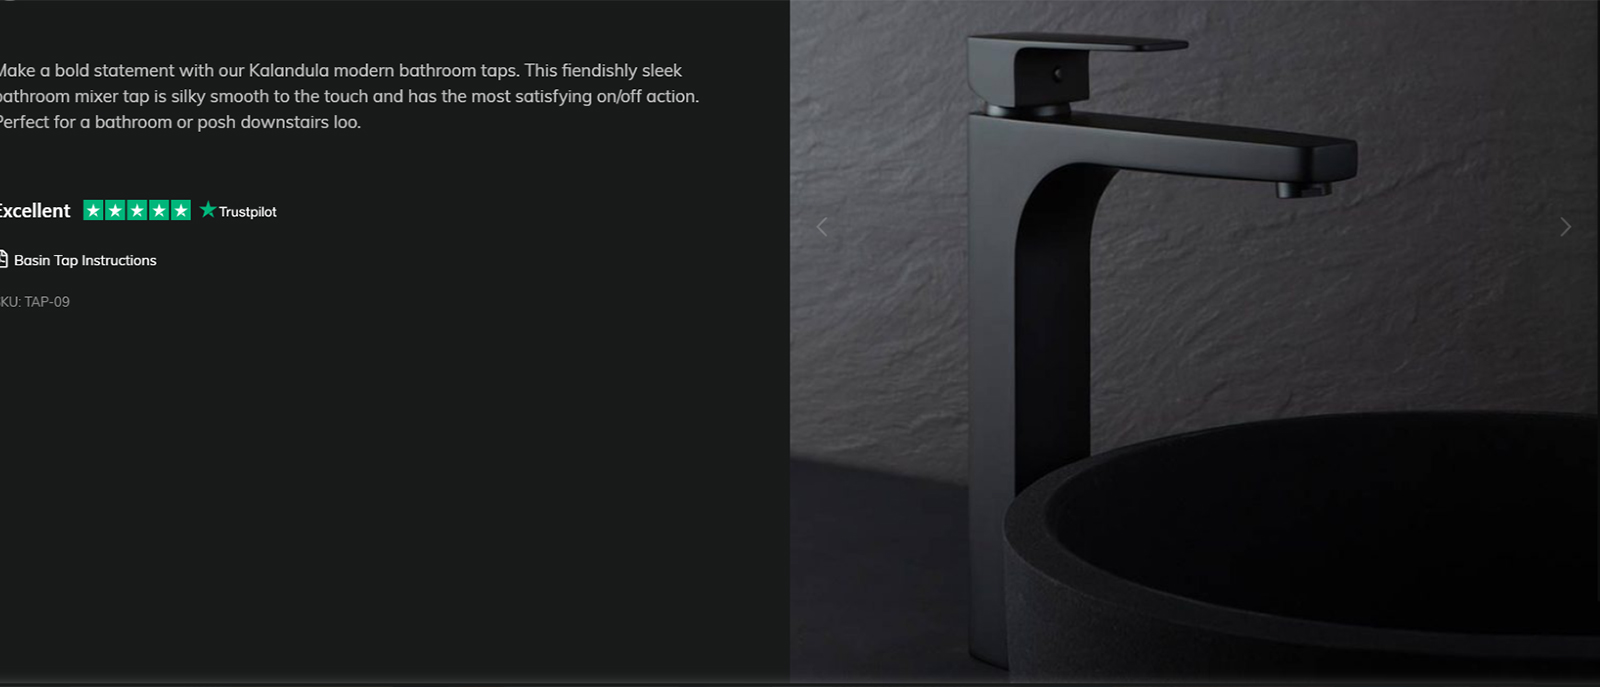 This image of a black tap in a dark setting is not only very difficult to read but a basin in the foreground masks the base of the product. Not only does this make it hard for a creative specifier to assess the product but this image could not be put forward as part of a presentation to a client.